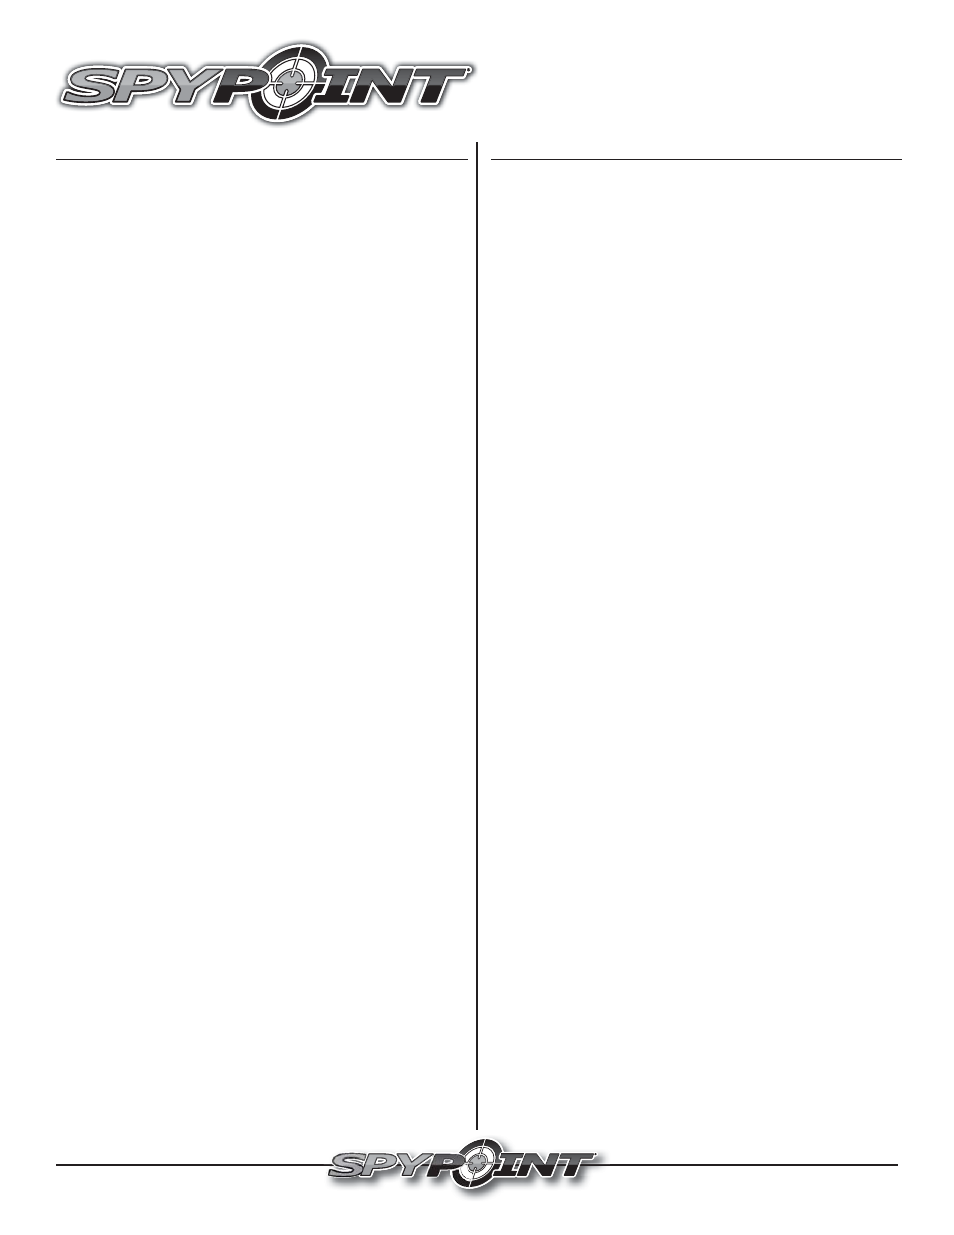 SPYPOINT EM-24 User Manual | 2 pages